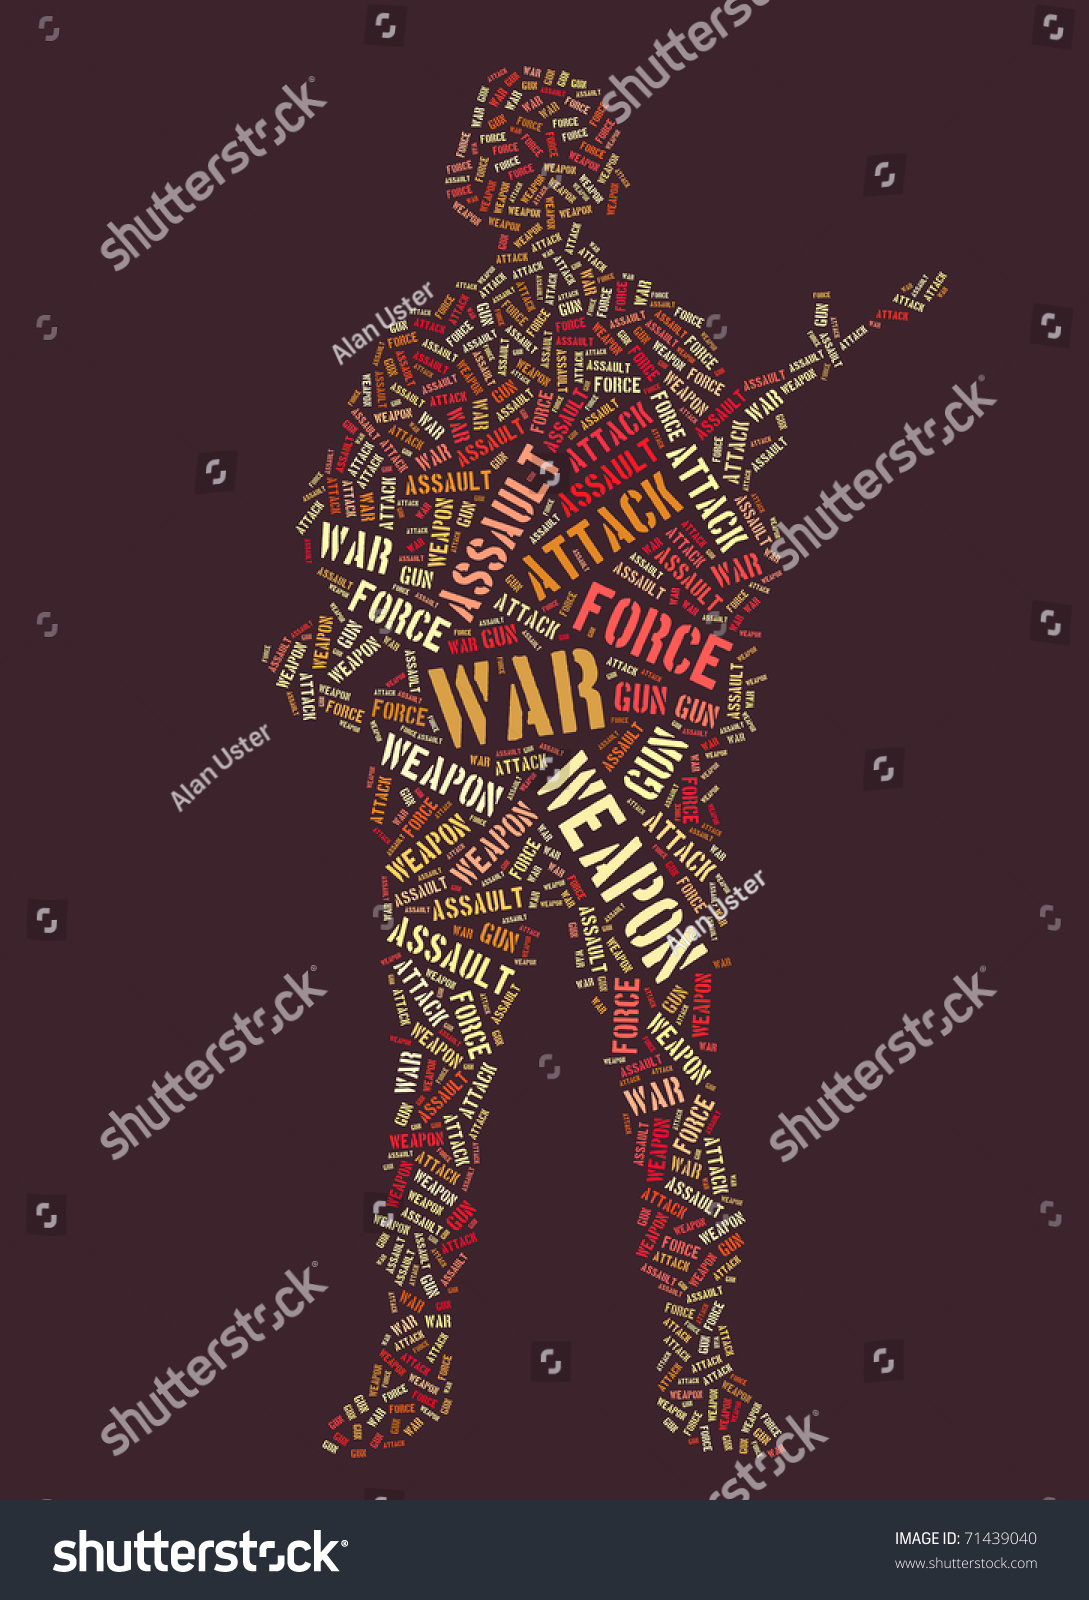 war on words Read and download war of words england free ebooks in pdf format the art of war the war of the worlds lost in shangri-la unbroken the art of war.